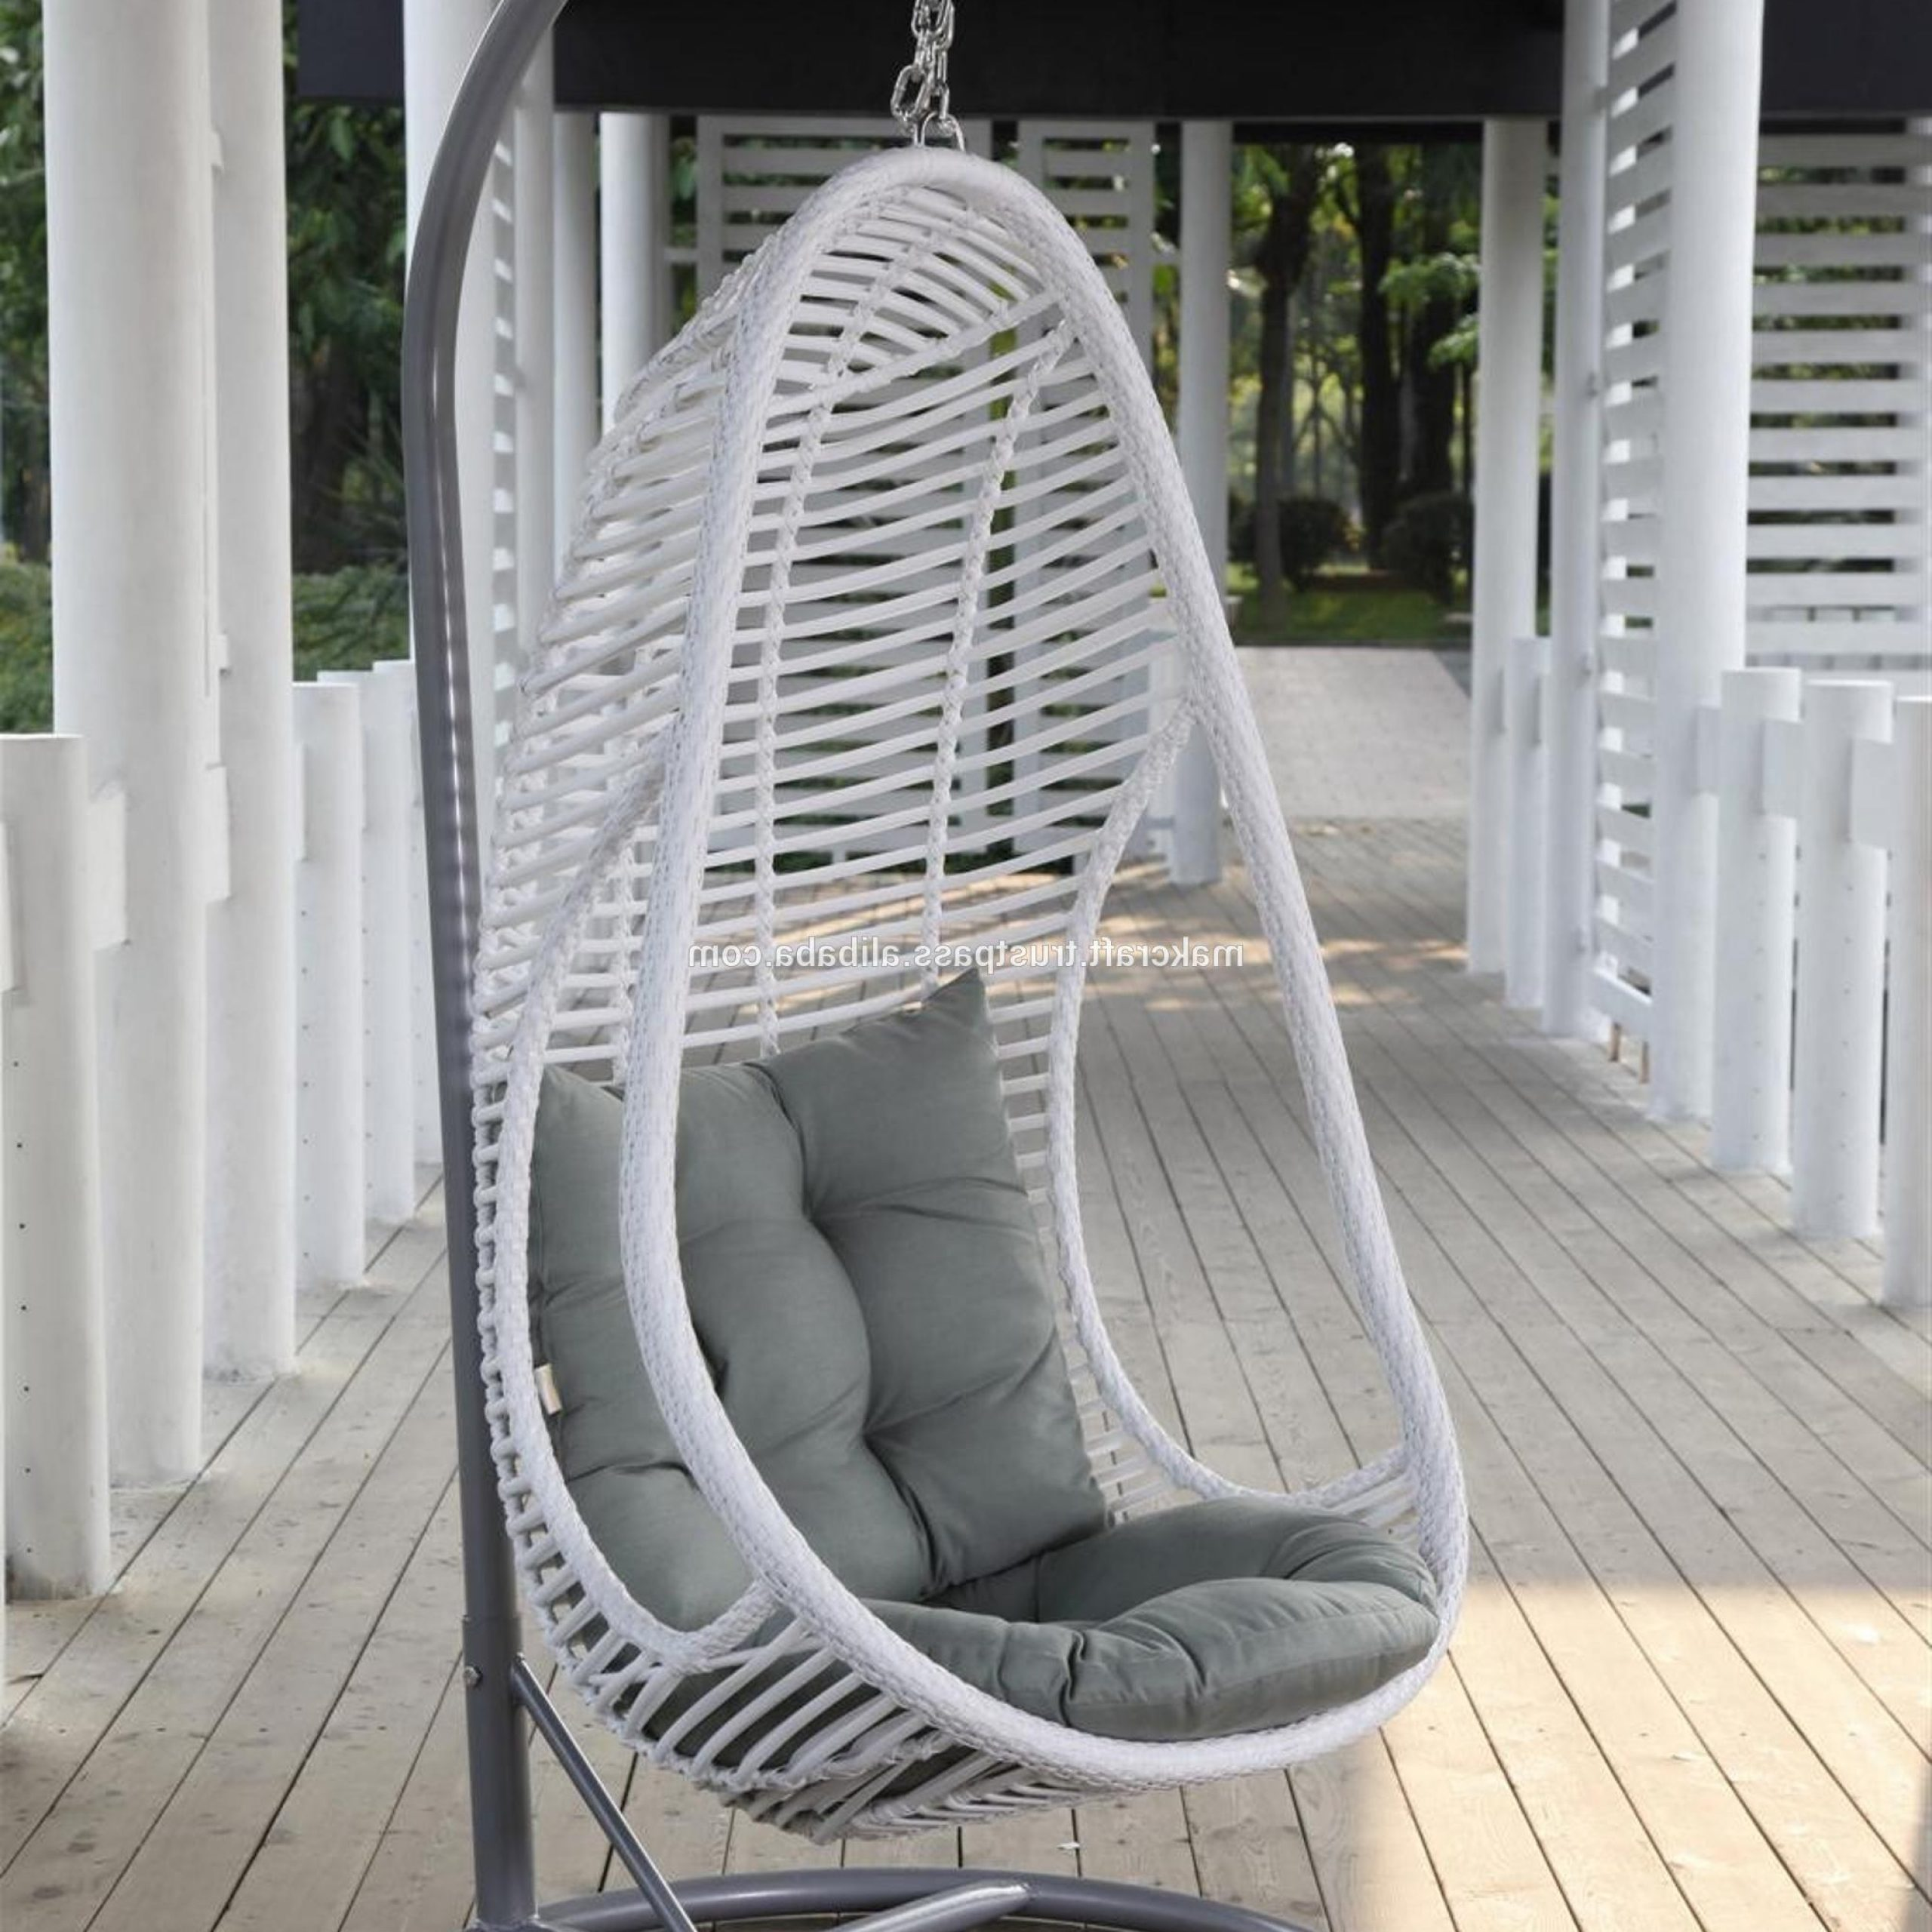 Wicker Rattan Outdoor Garden Swing Egg Chair – Garden Rattan Swing Egg Chair – Patio Swing Egg Chair With Steel Frame Furniture – Buy Wicker Hanging Throughout Newest Rattan Garden Swing Chairs (View 25 of 31)